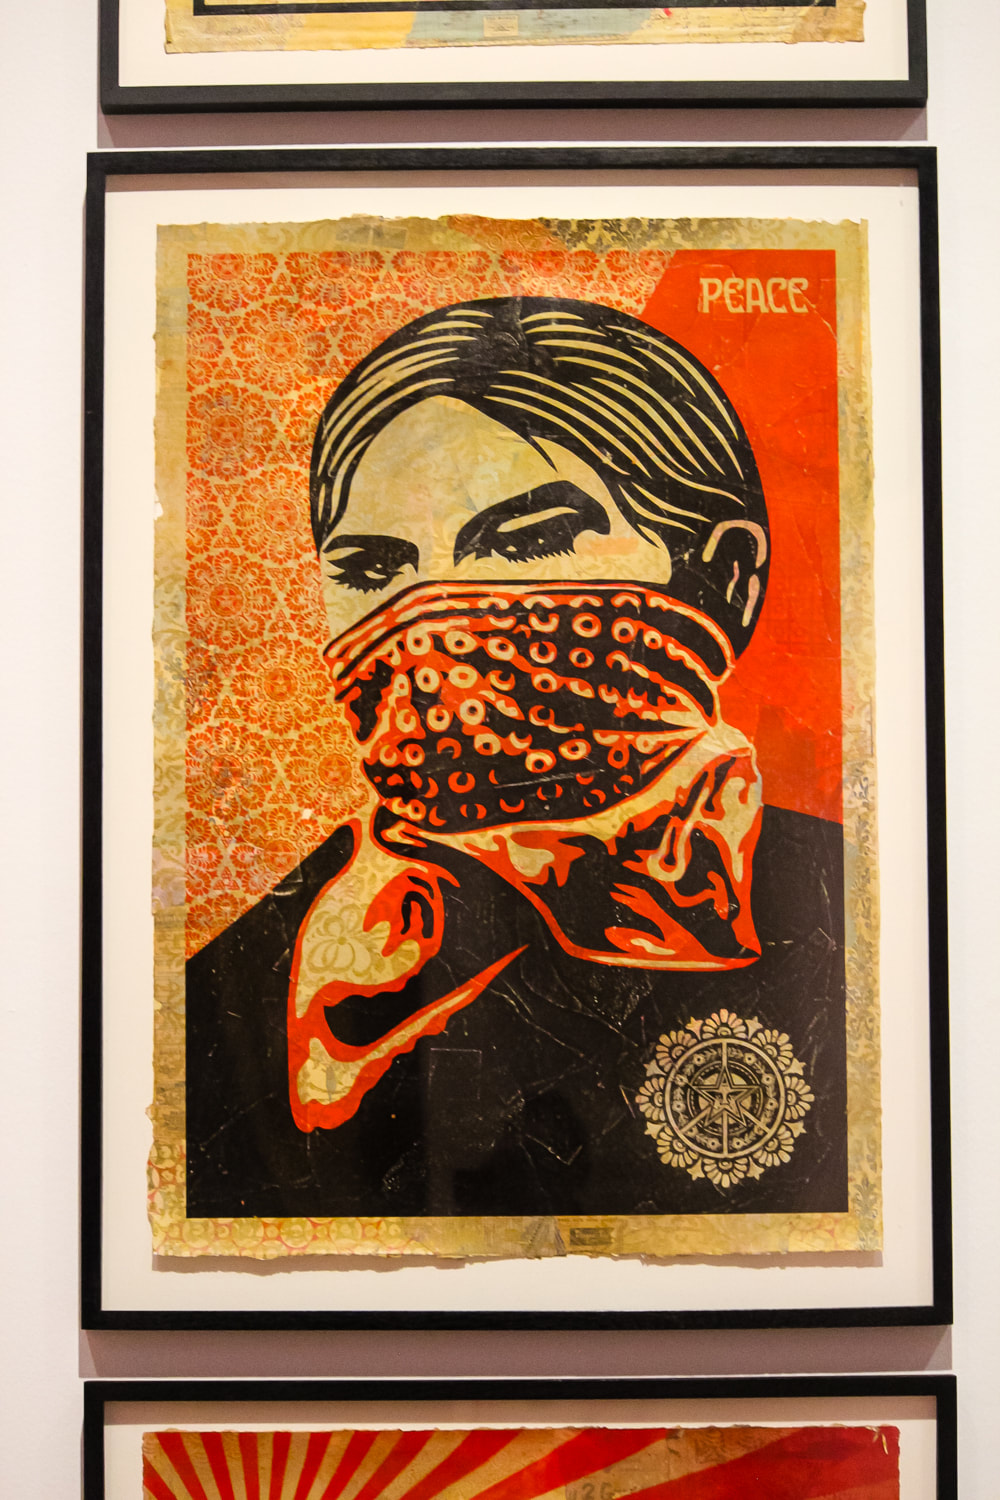 Singapore: Art From The Streets Exhibition at the ArtScience Museum - Zapatista Woman - Shepard Fairey - 2005.